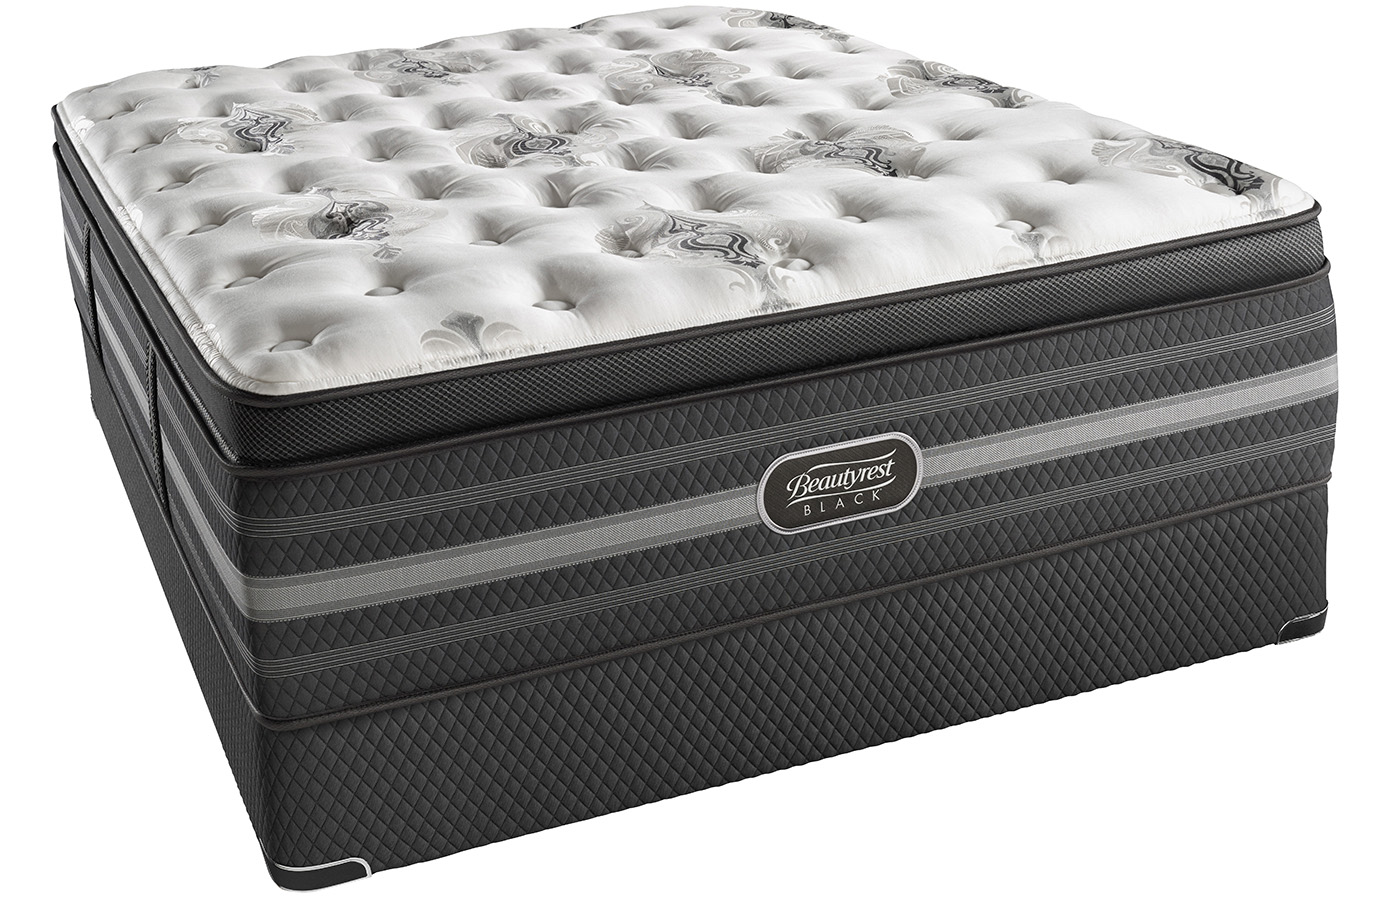 Simmons Beautyrest Black Sonya Luxury Firm Pillow Top Mattress by Simmons